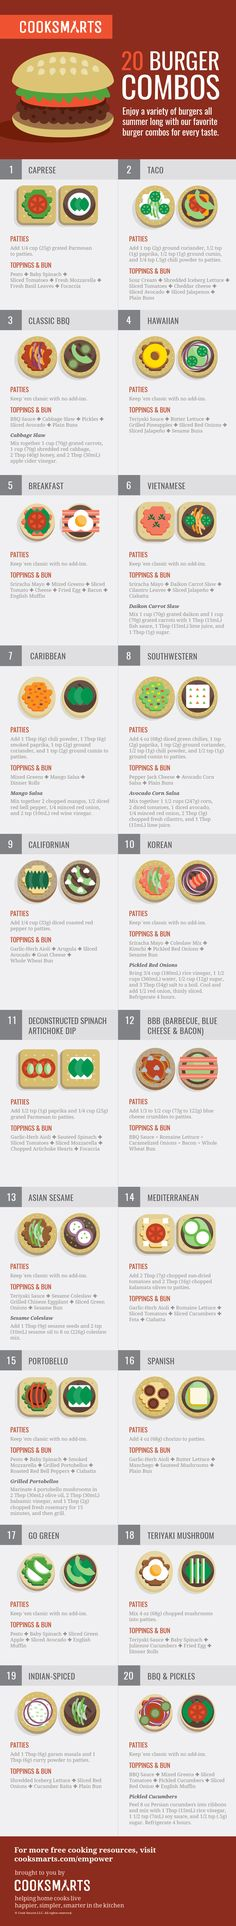 20 Burger Combos via @CookSmarts Ultimate Burger Guide #infographic #grilling